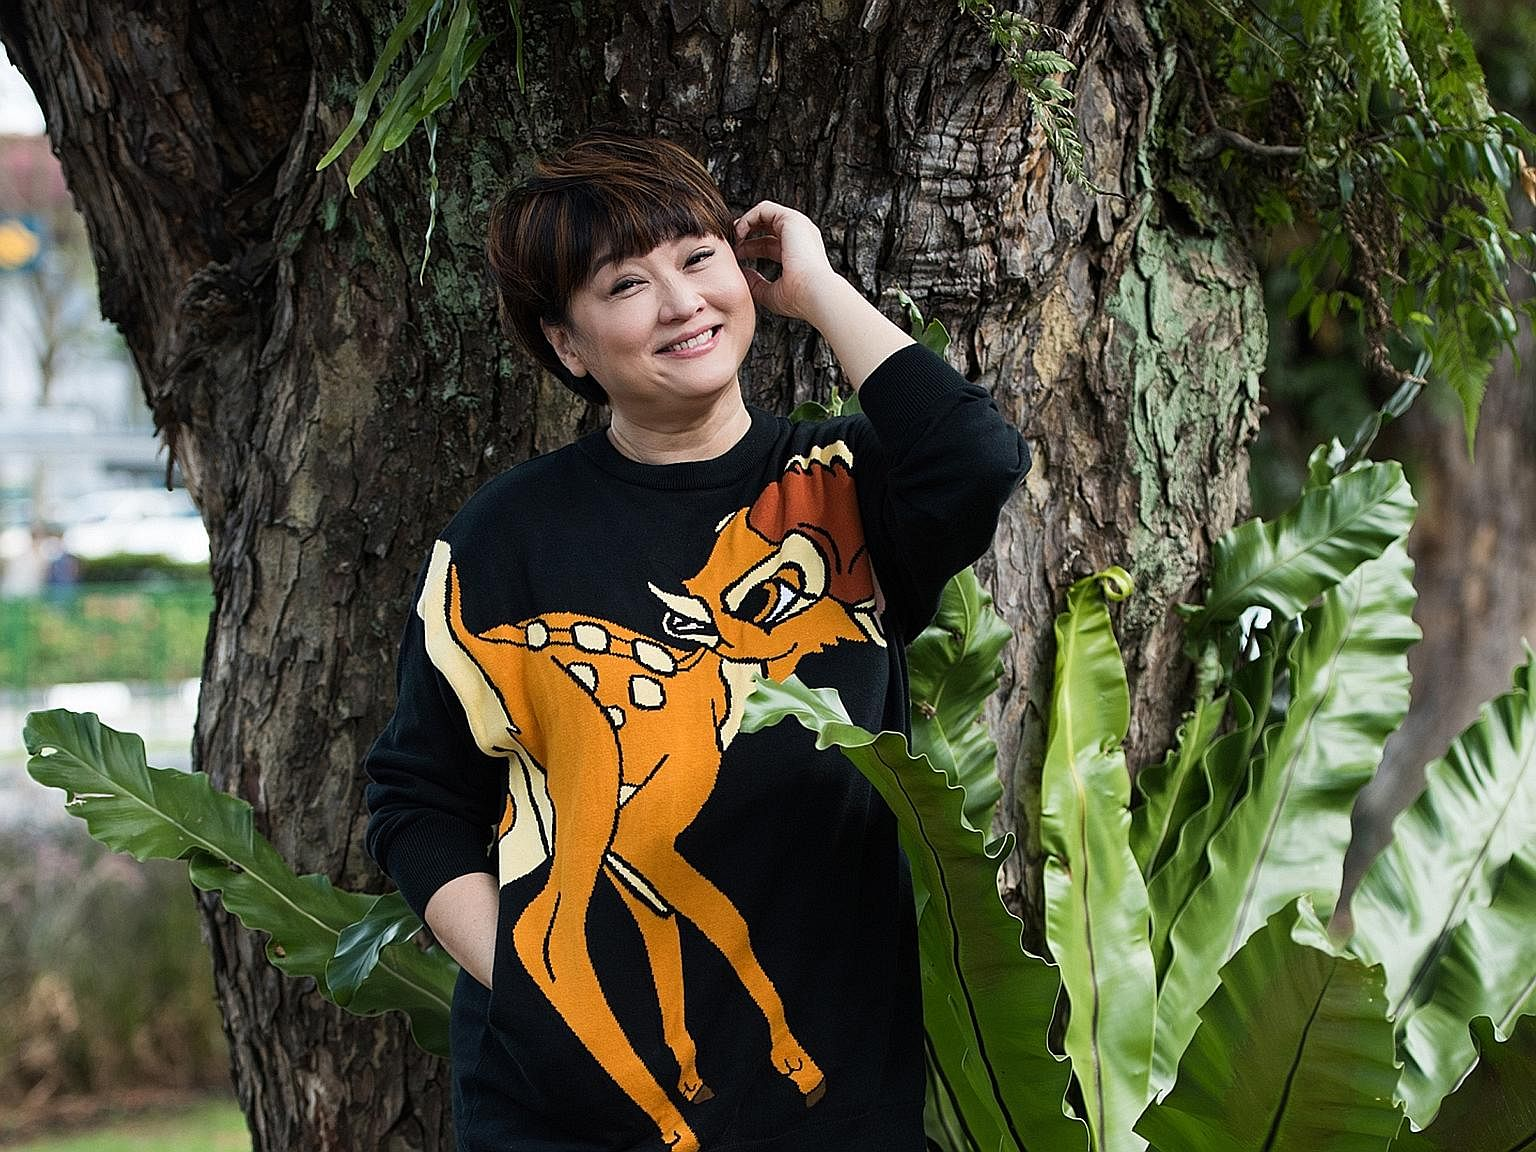 Chen Liping, who received her first acting role in 1985 in Takeover, is filming her 60th drama, Say Cheese.